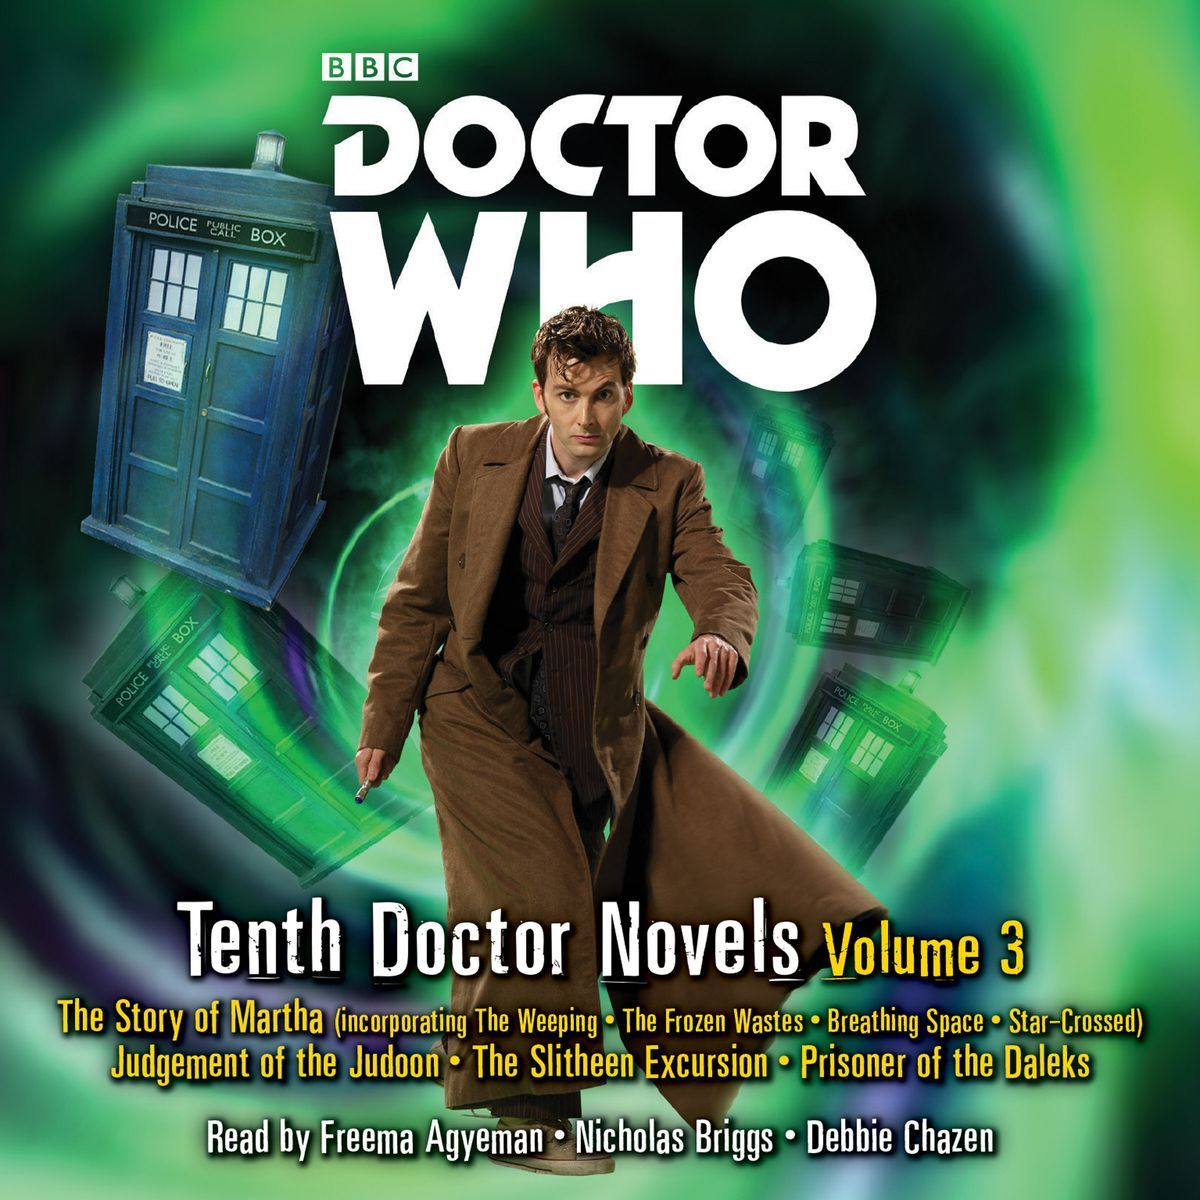 Tenth Doctor Novels Volume 3